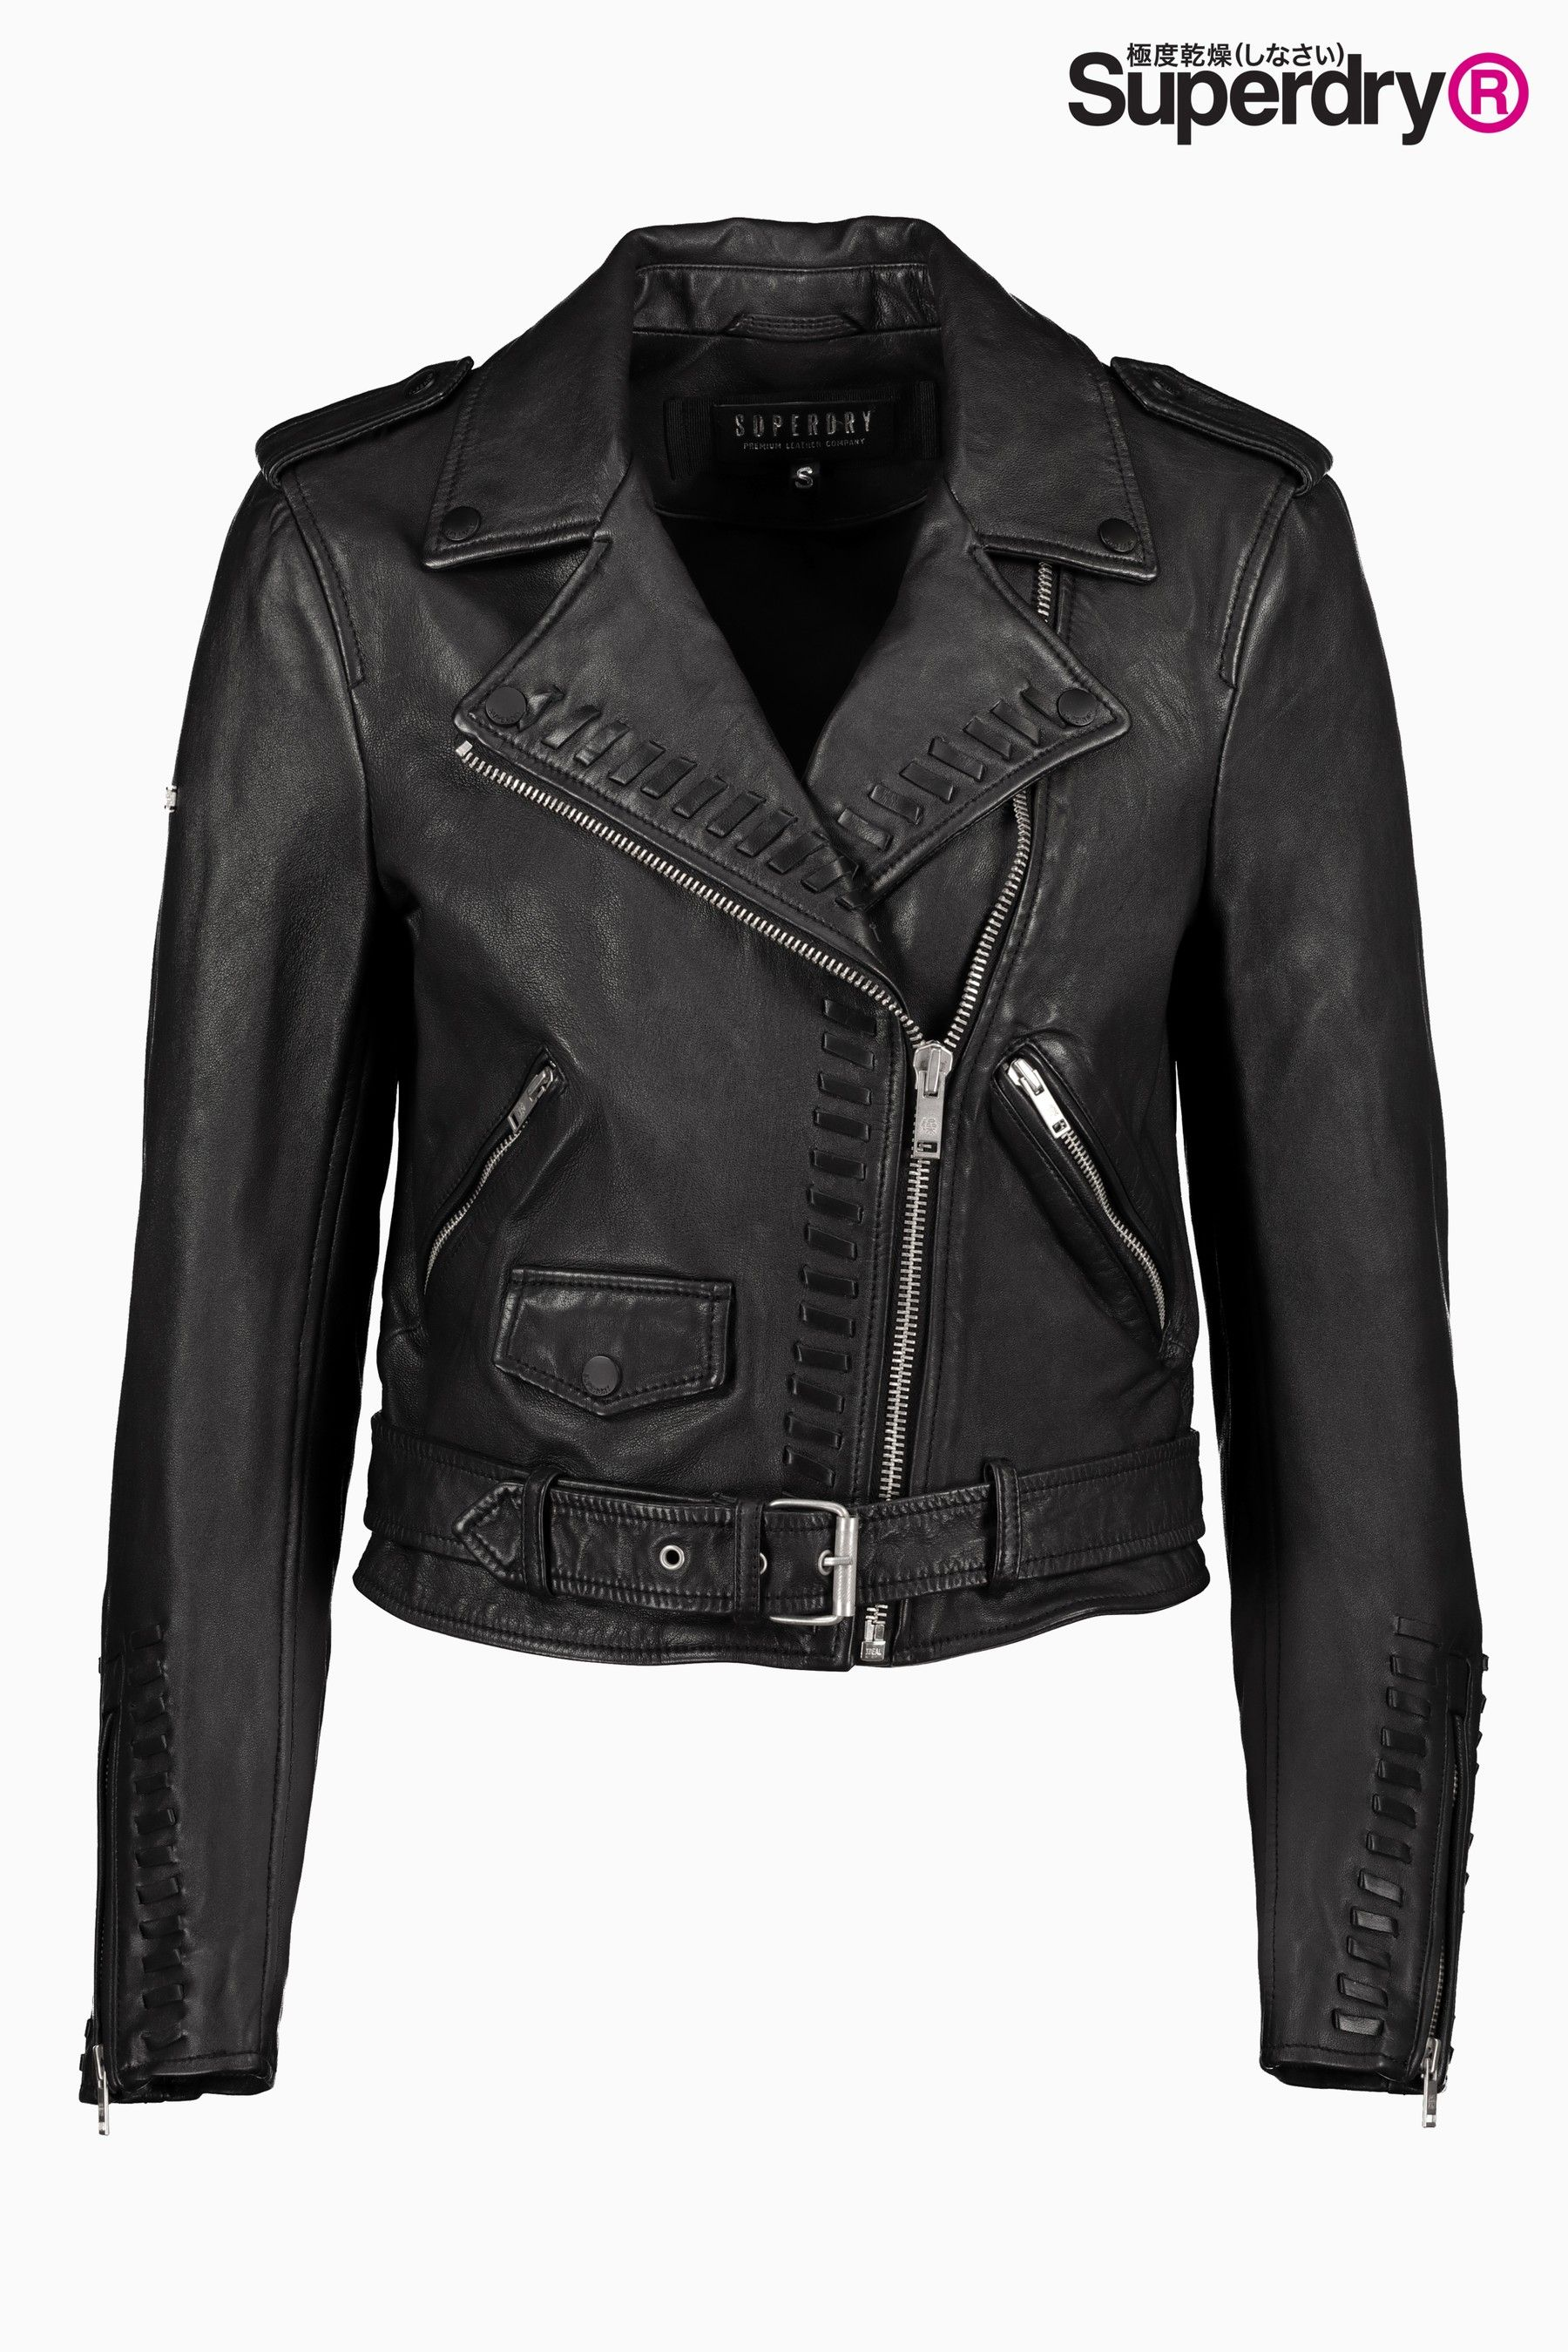 645f7376e6 Womens Superdry Kiki Leather Biker Jacket - Black | Products in 2019 ...